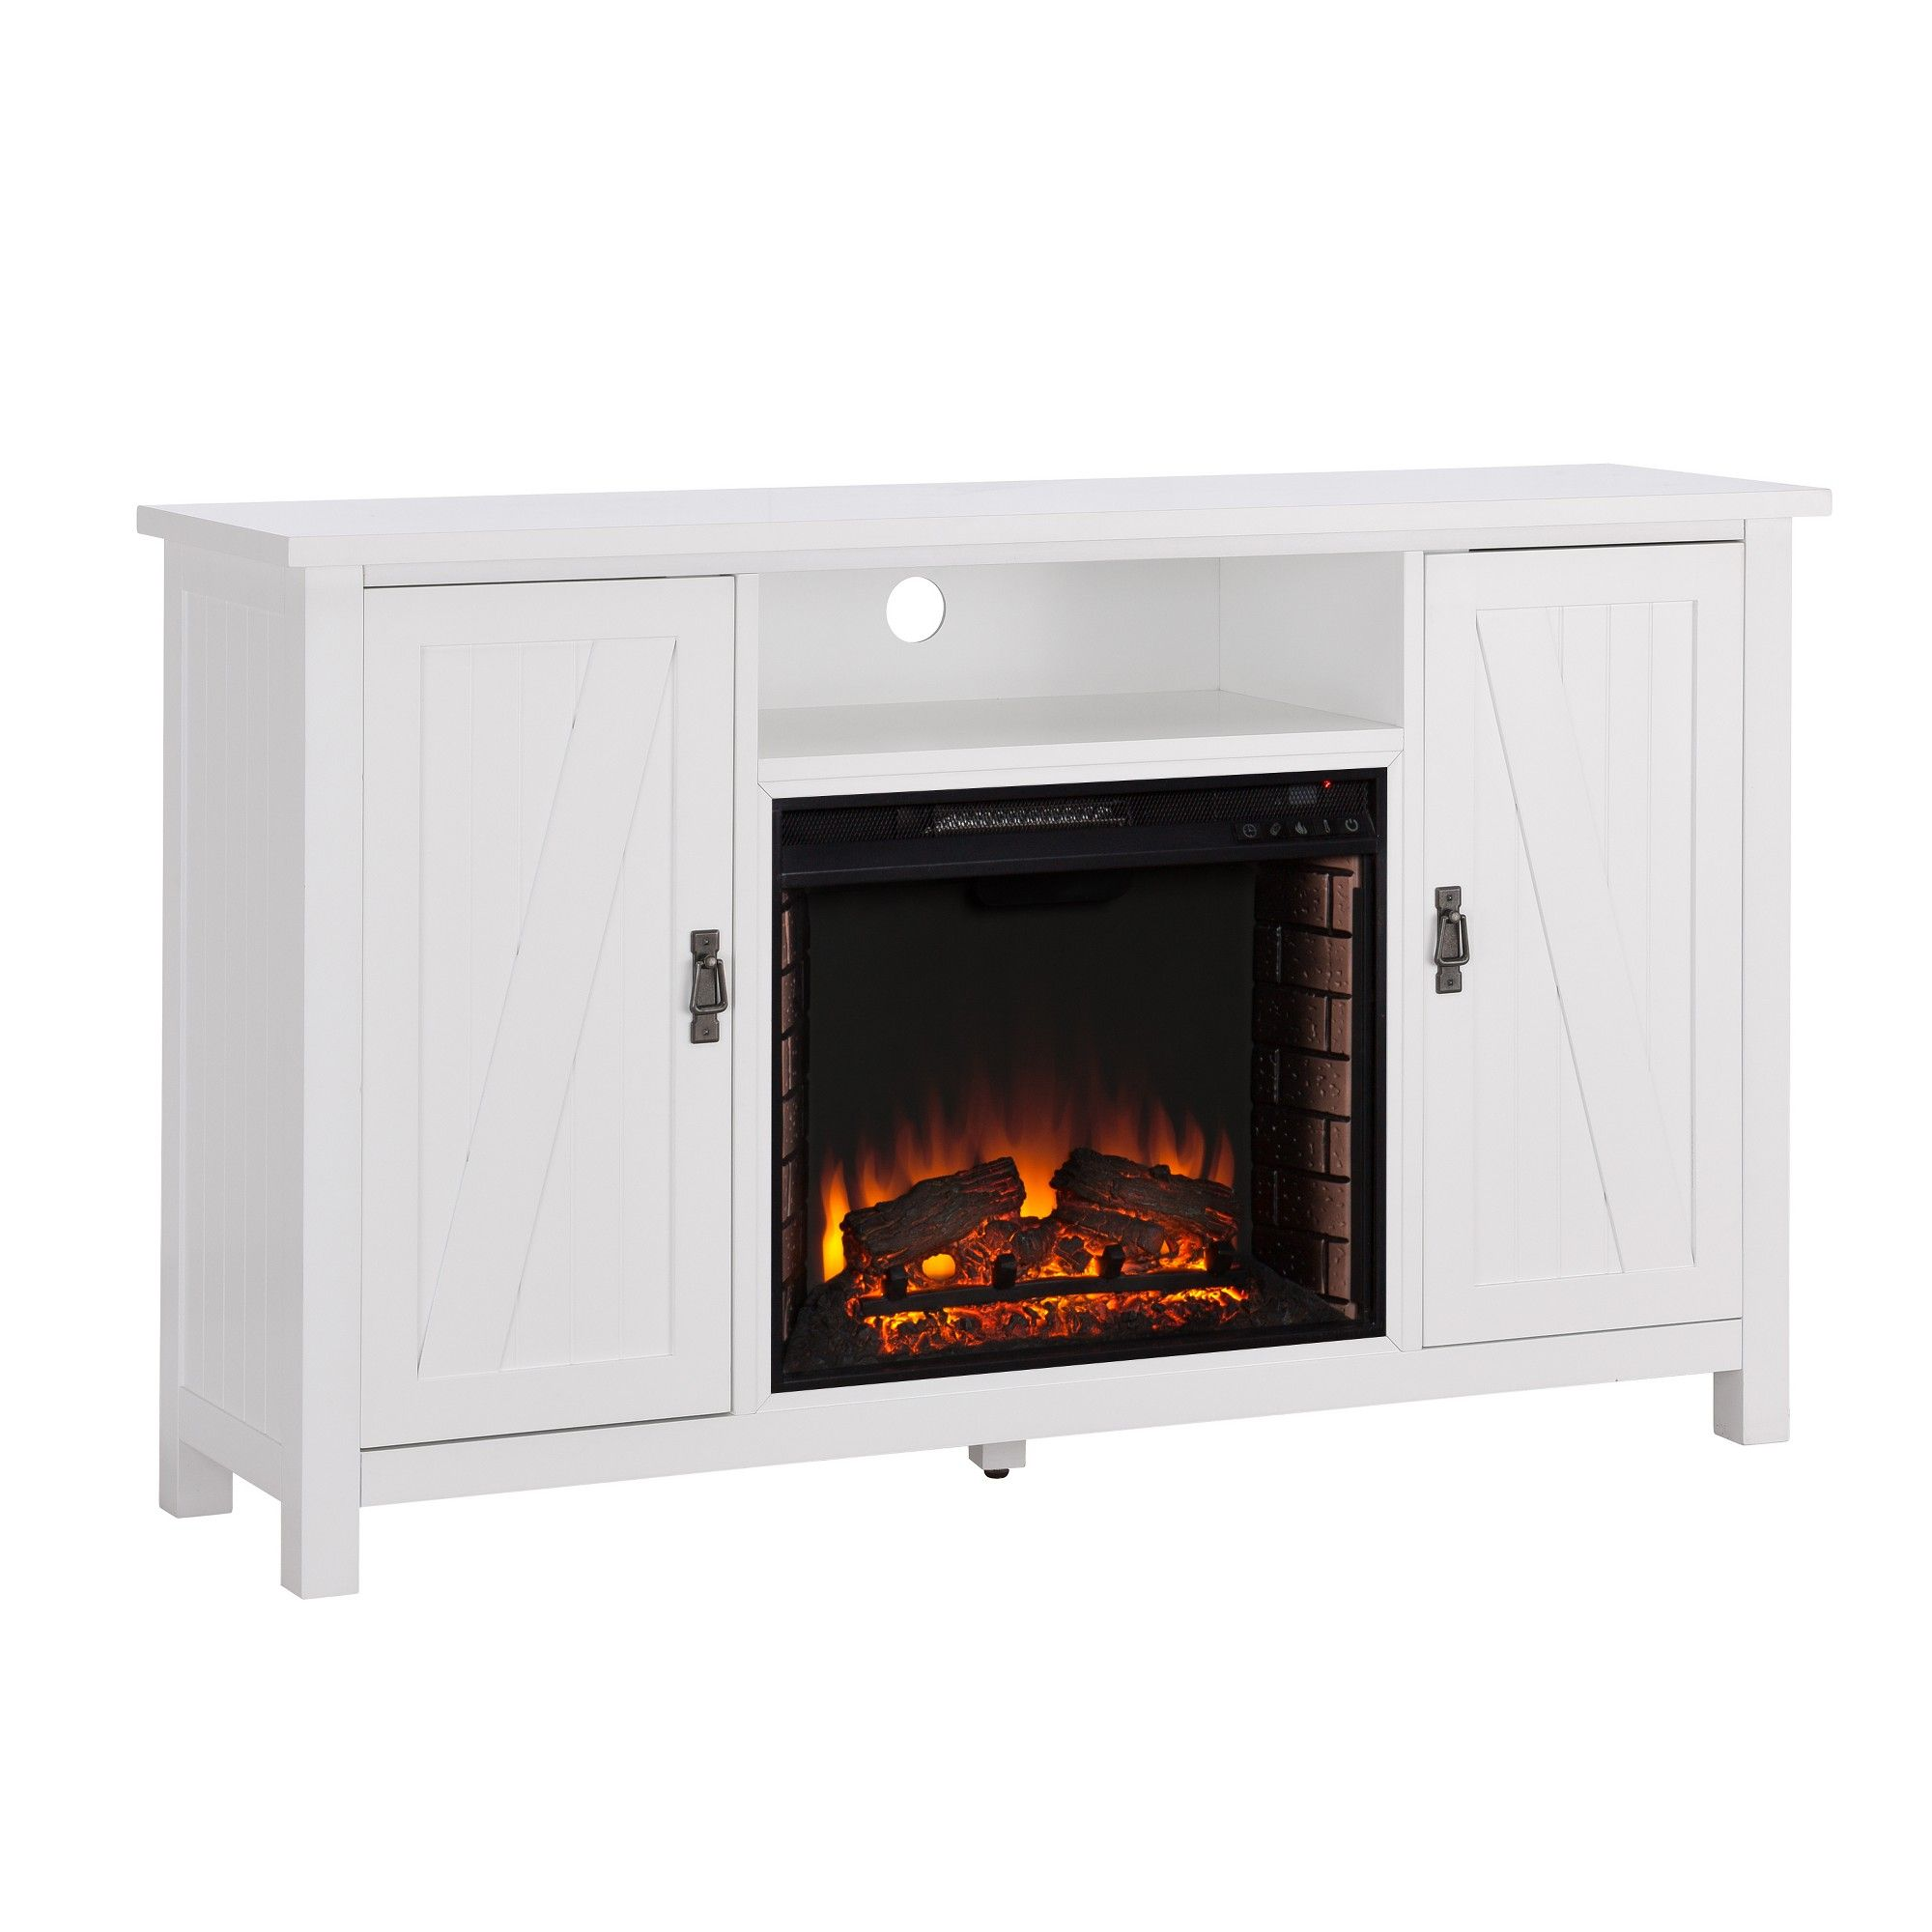 Adderline Farmhouse Style Electric Fireplace TV Stand